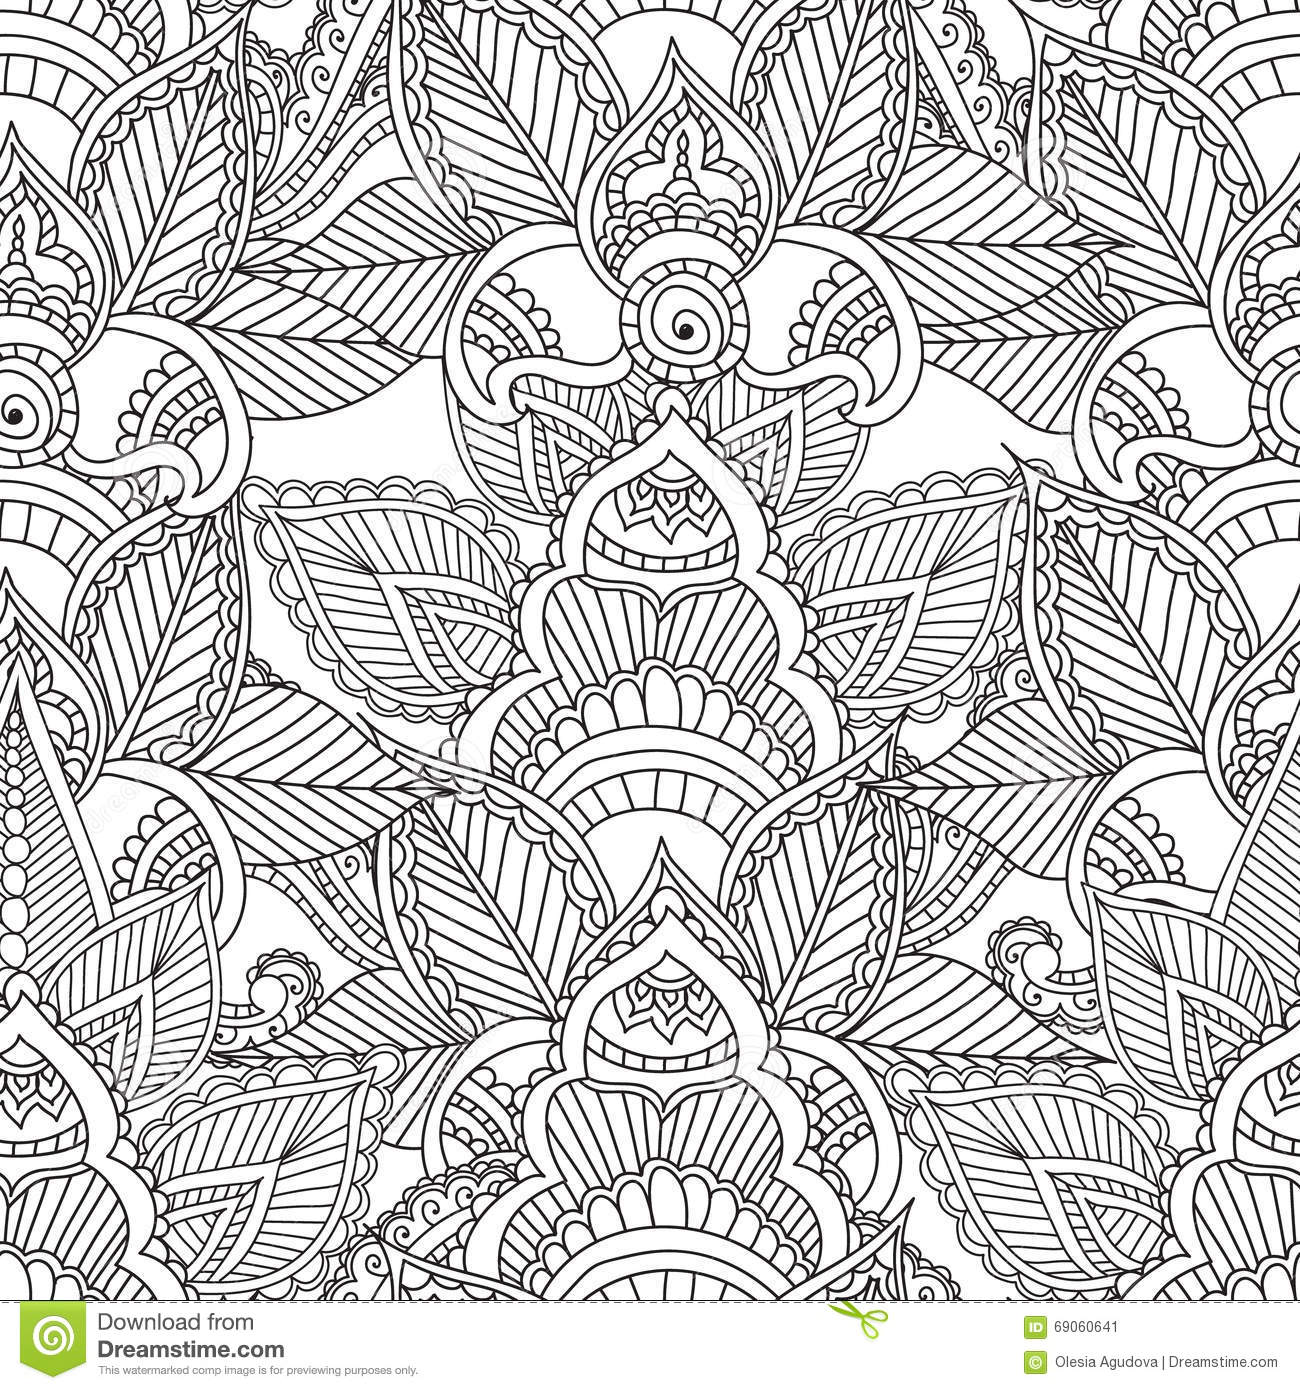 Zen Garden Fall Live Wallpaper Full Version Coloring Pages For Adults Seamles Henna Mehndi Doodles